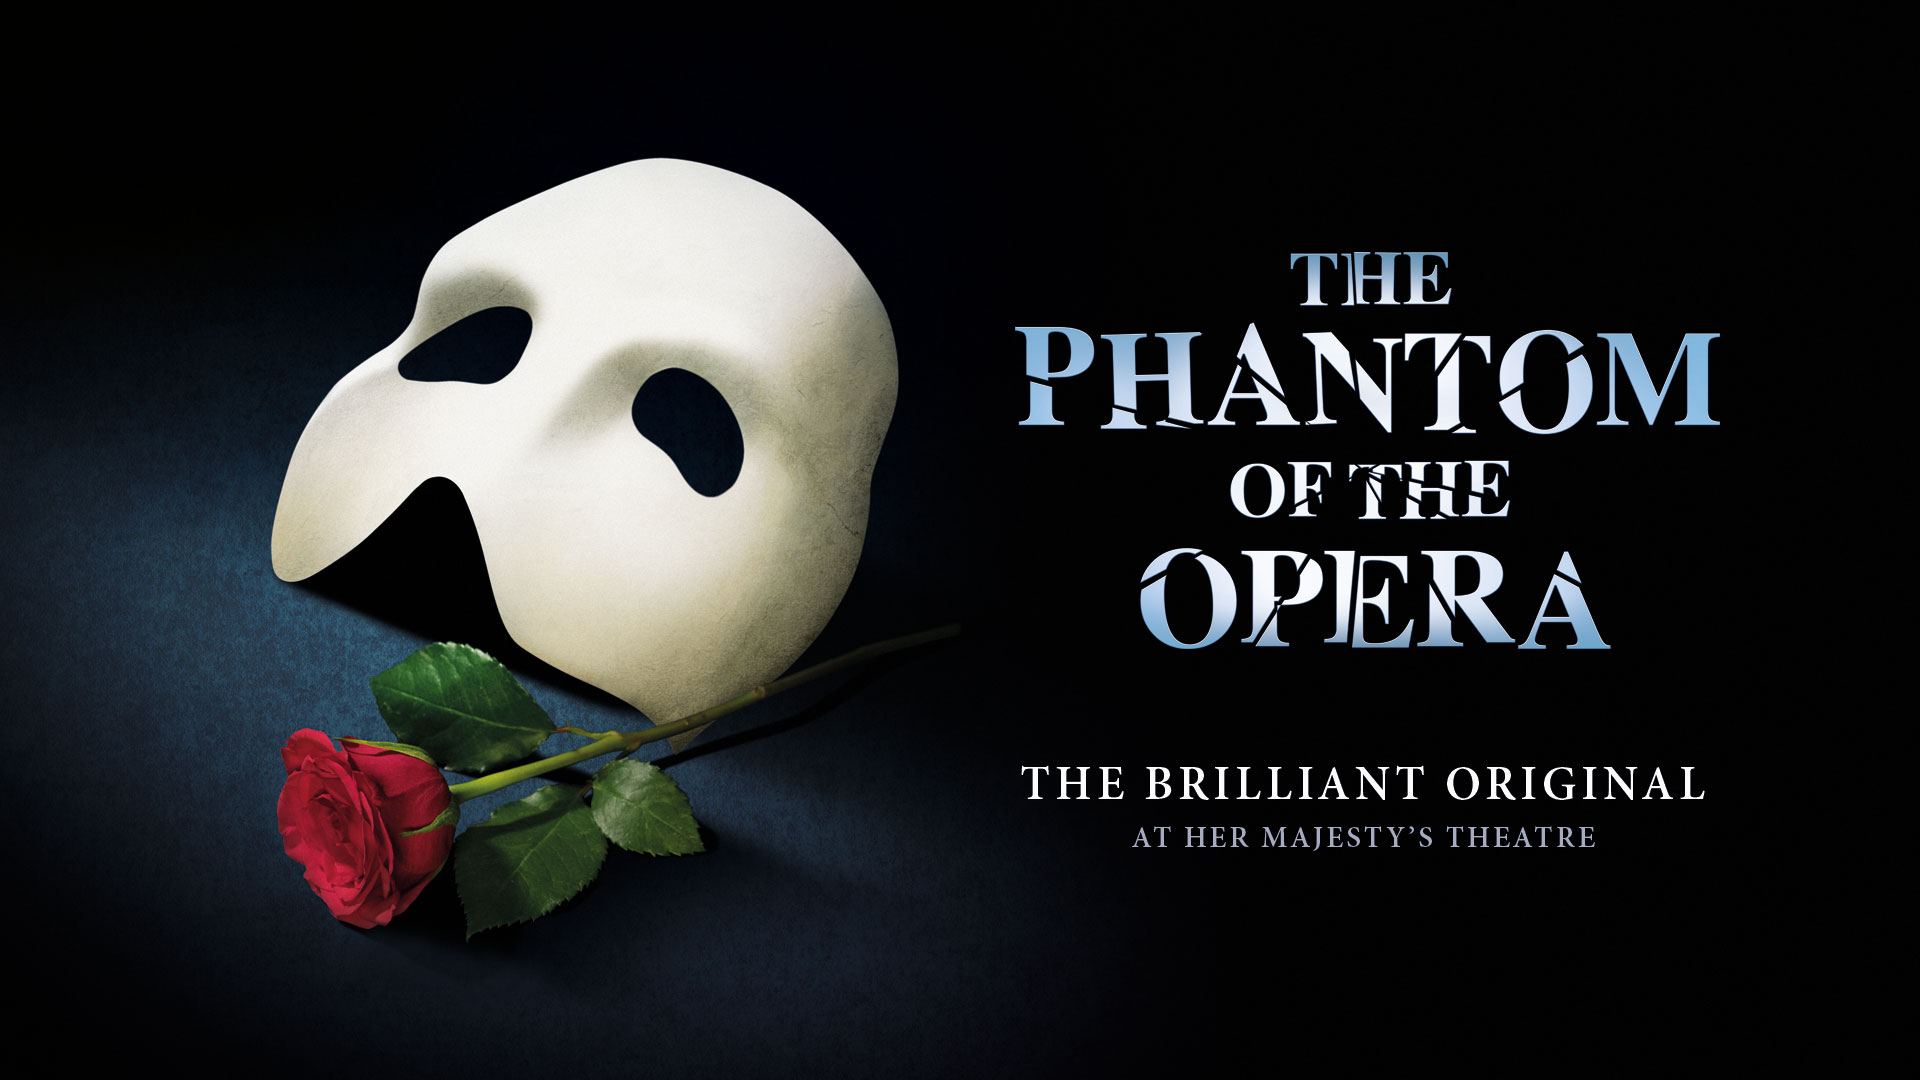 The Phantom of the Opera at Her Majesty's Theatre. Image courtesy of Cameron Mackintosh Ltd.